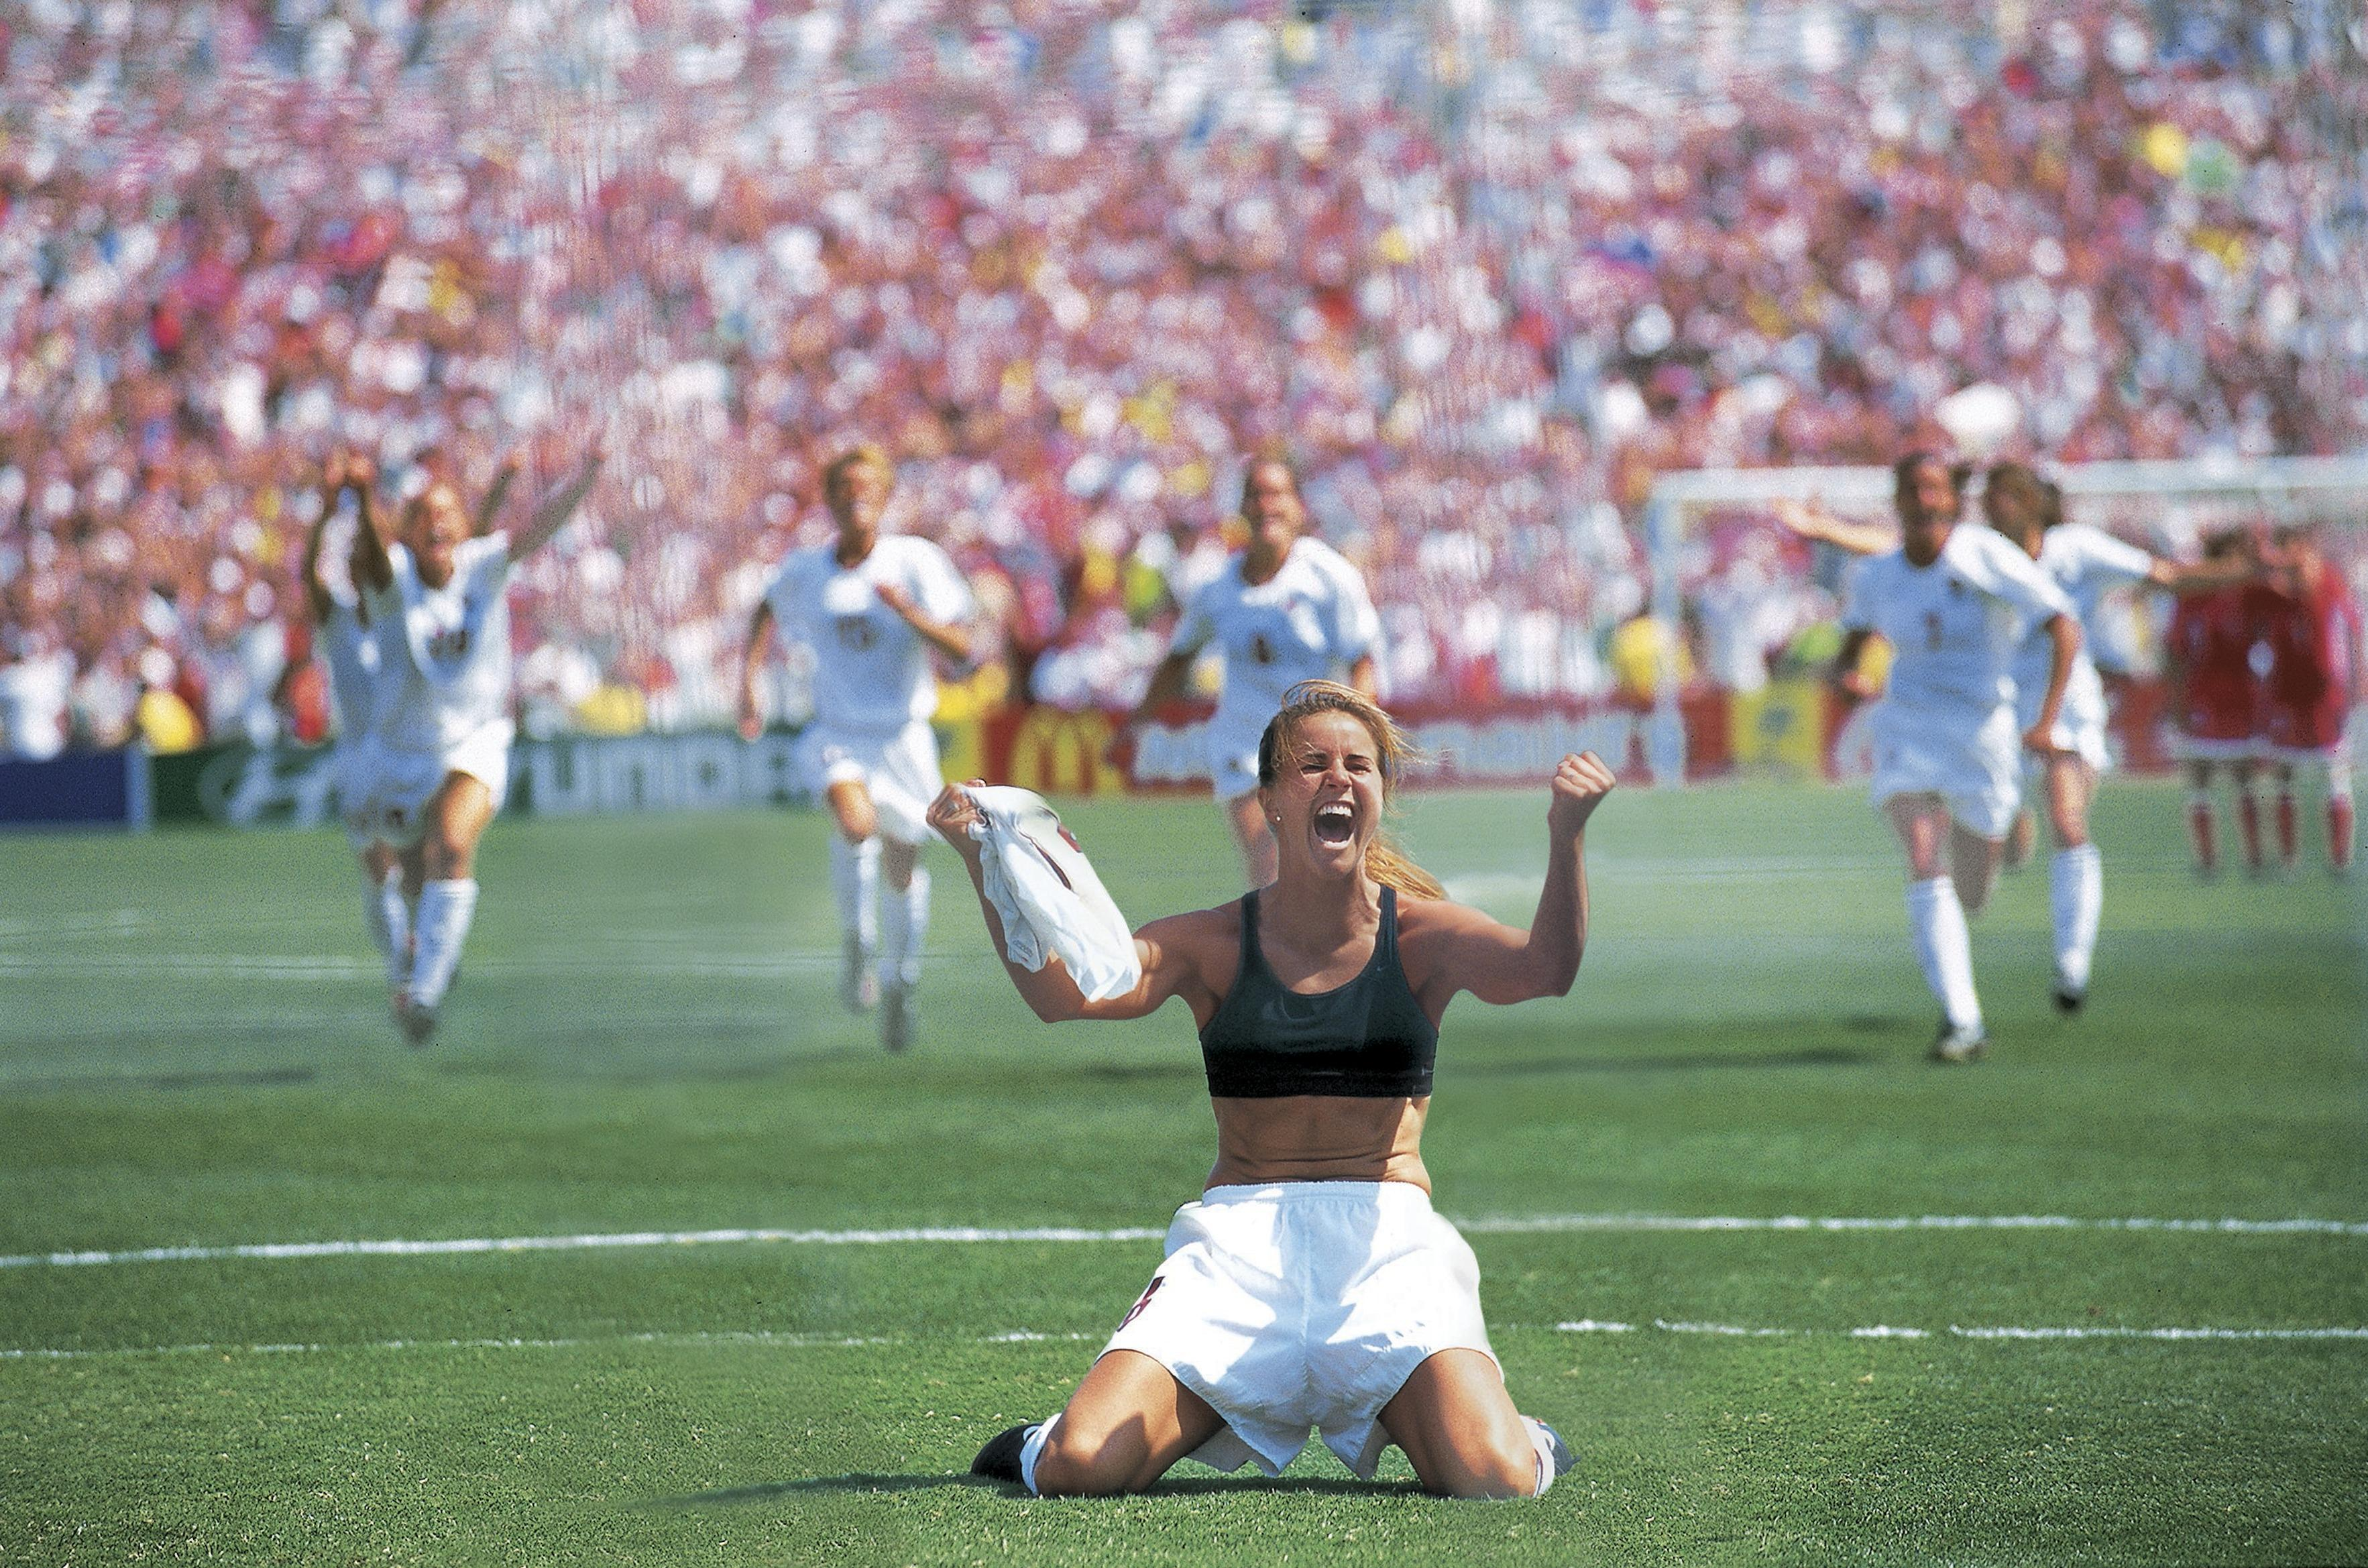 Women's World Cup game-changing moments No 4: Brandi Chastain in 1999